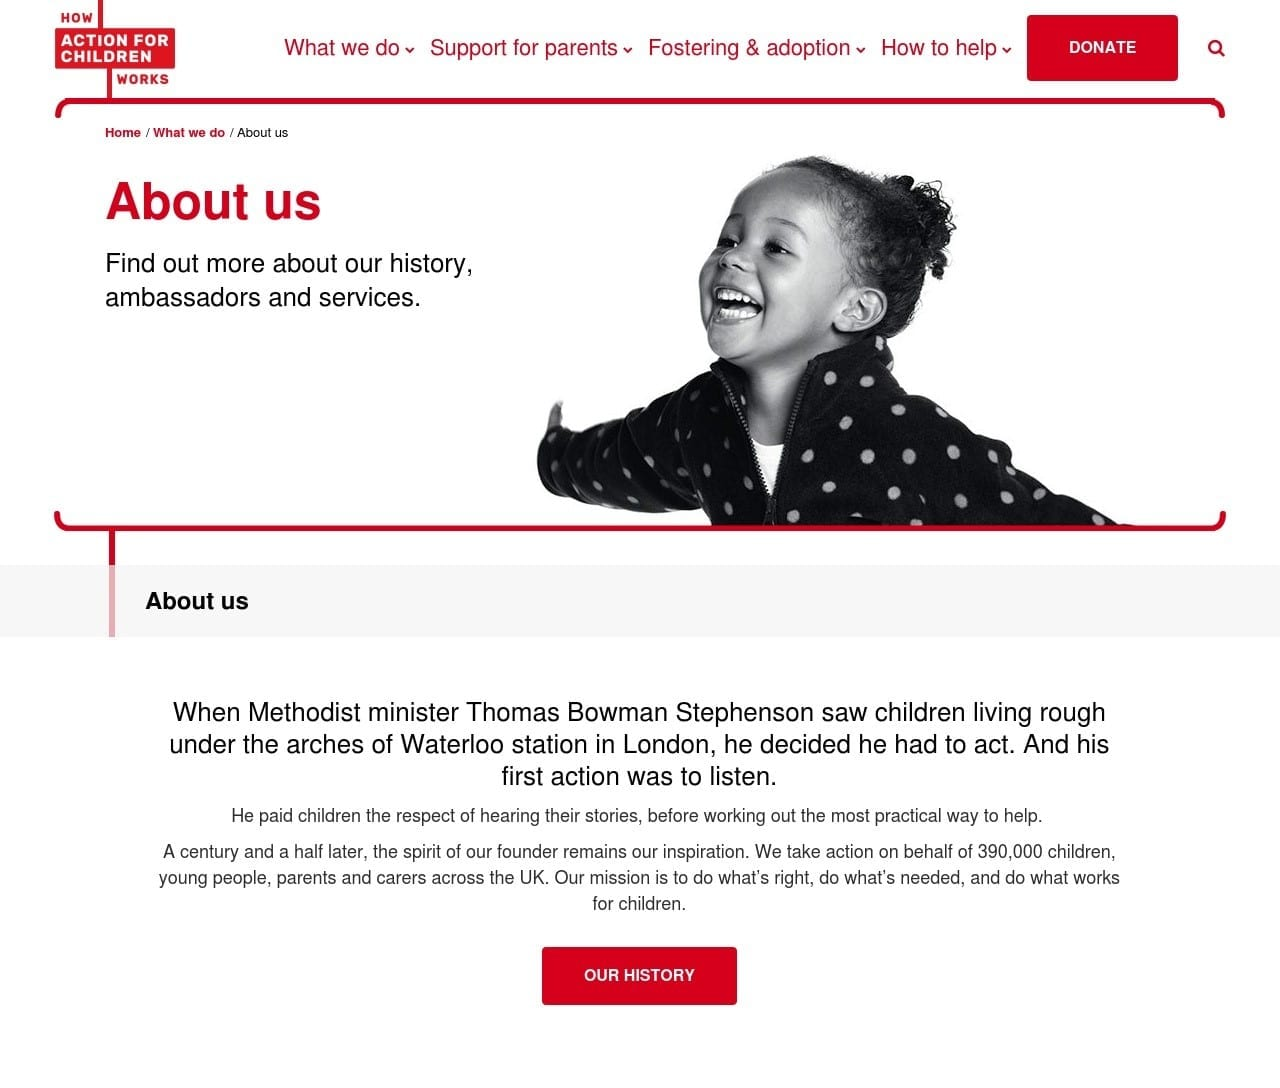 Action for Children About Us page